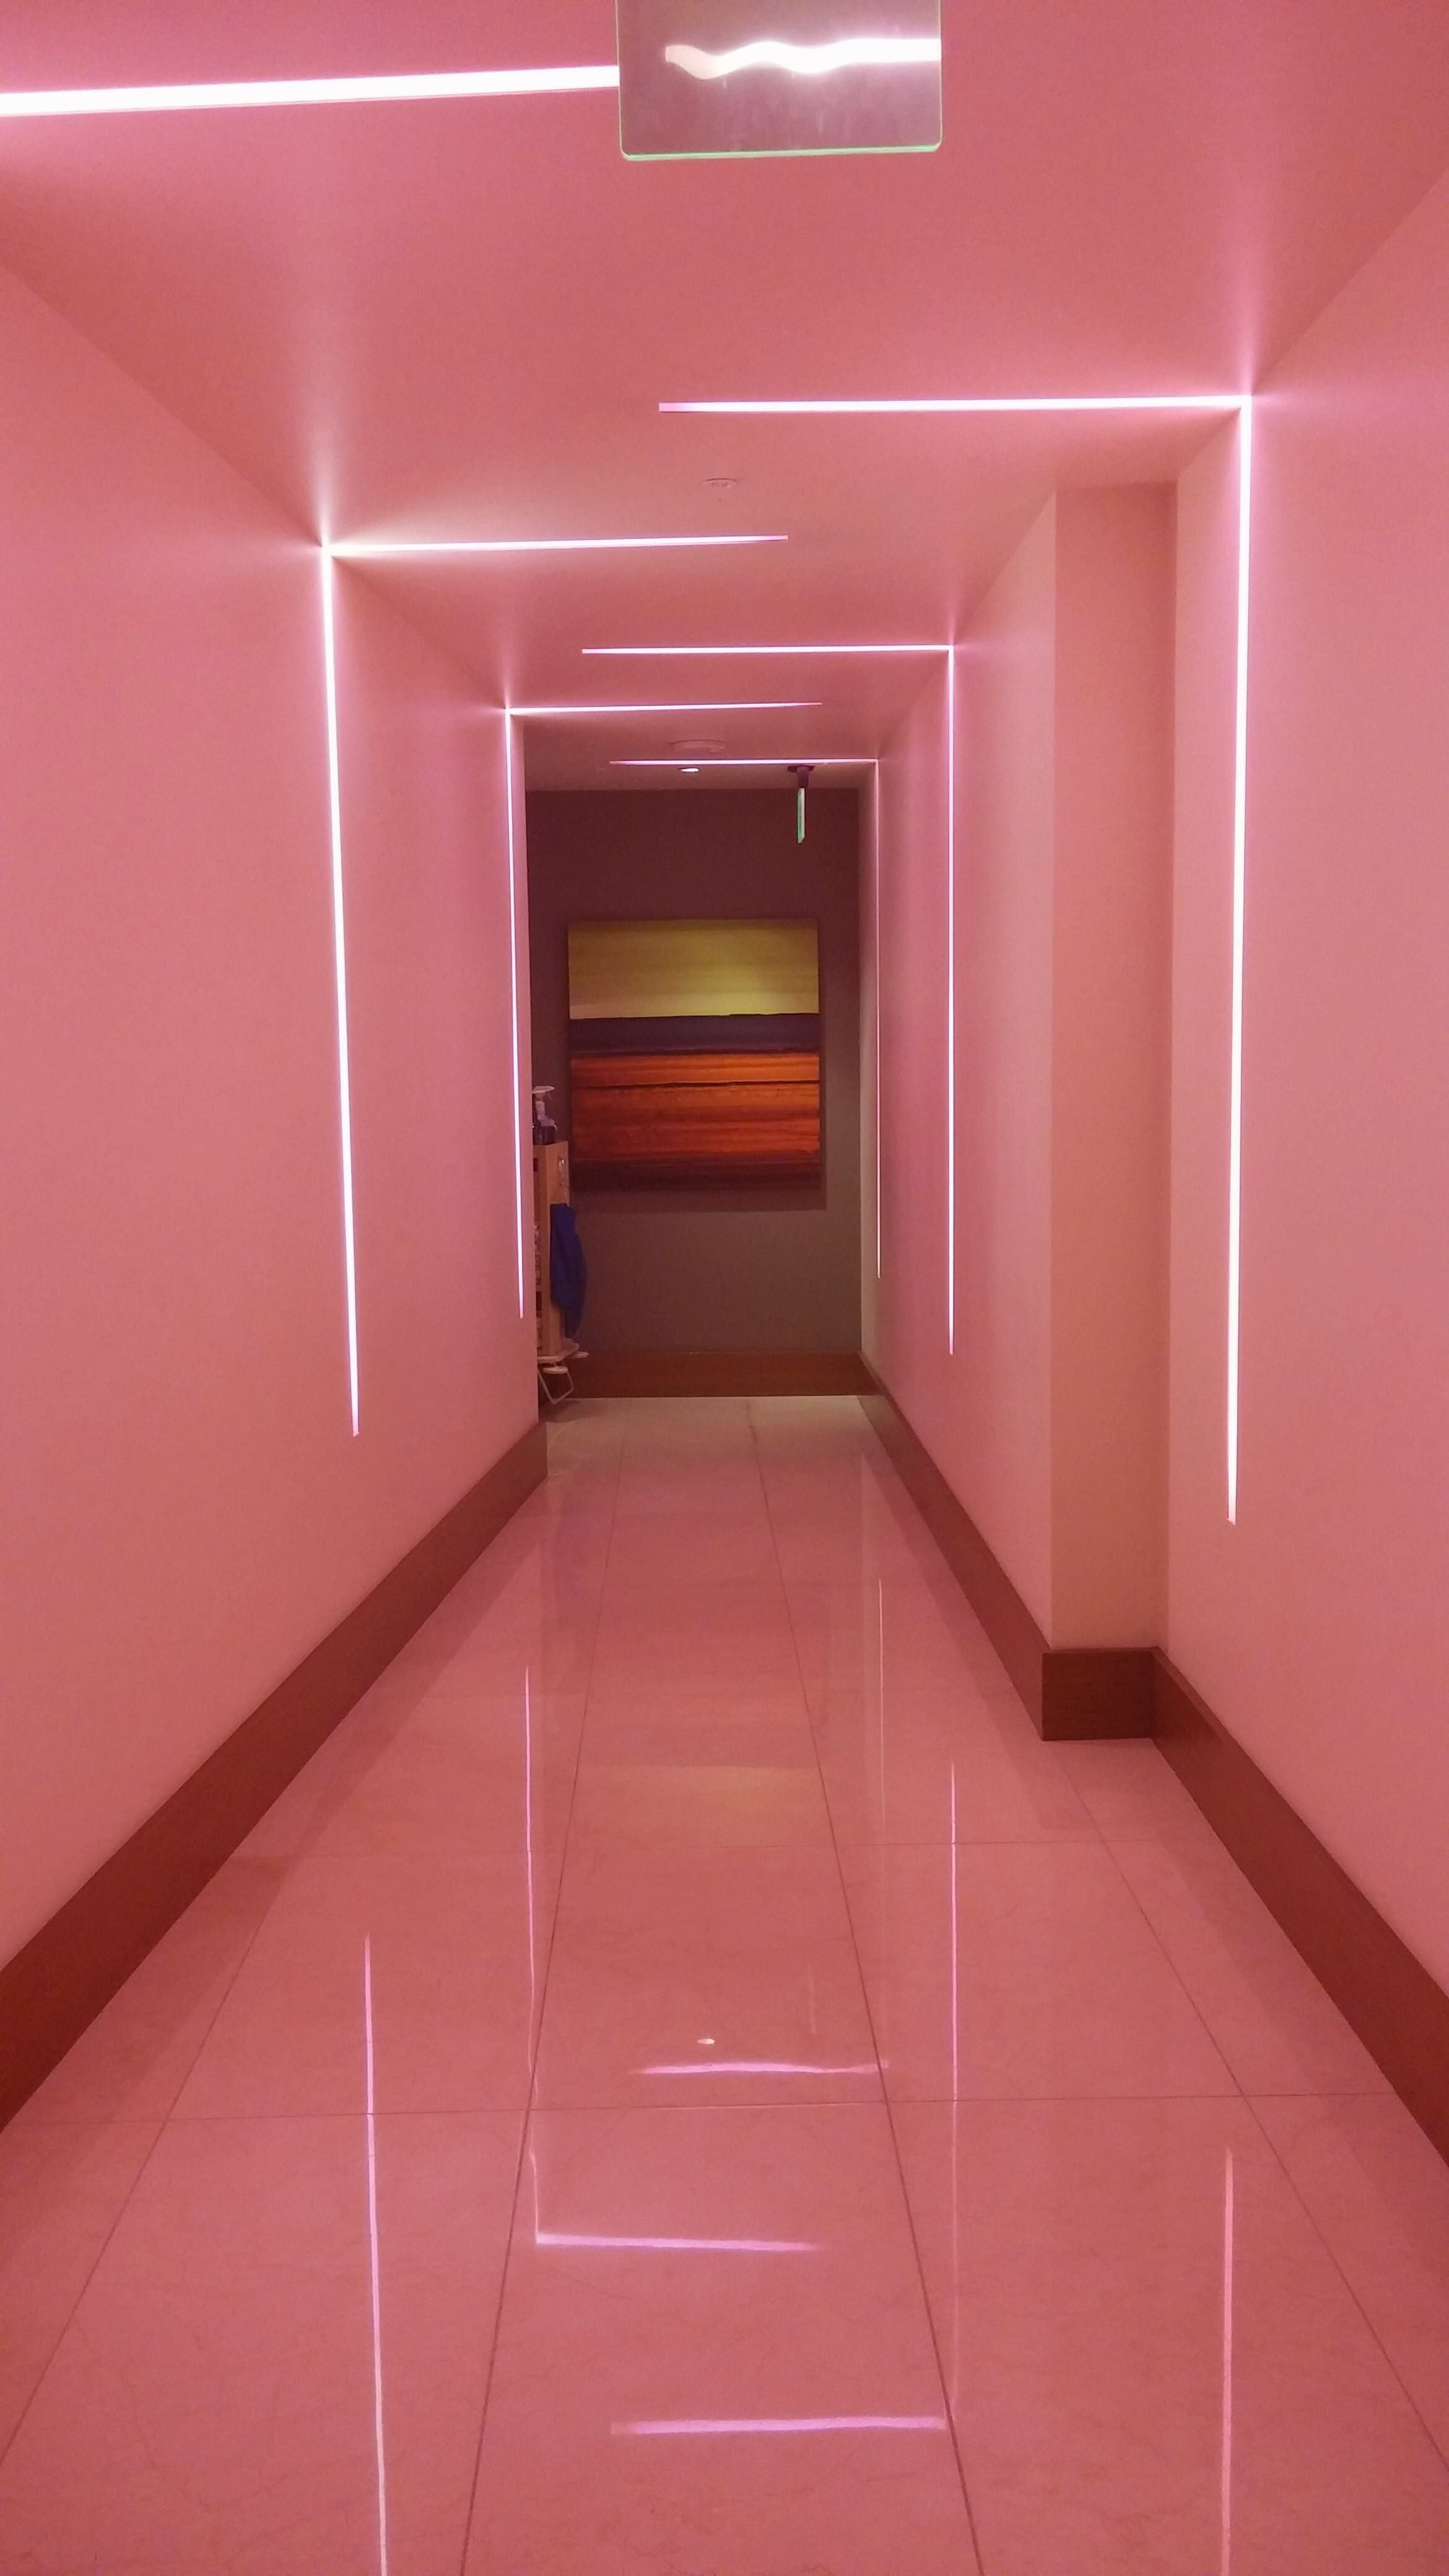 Best Vaporwave Room Sick Of All These People Talking Sick Of 640 x 480